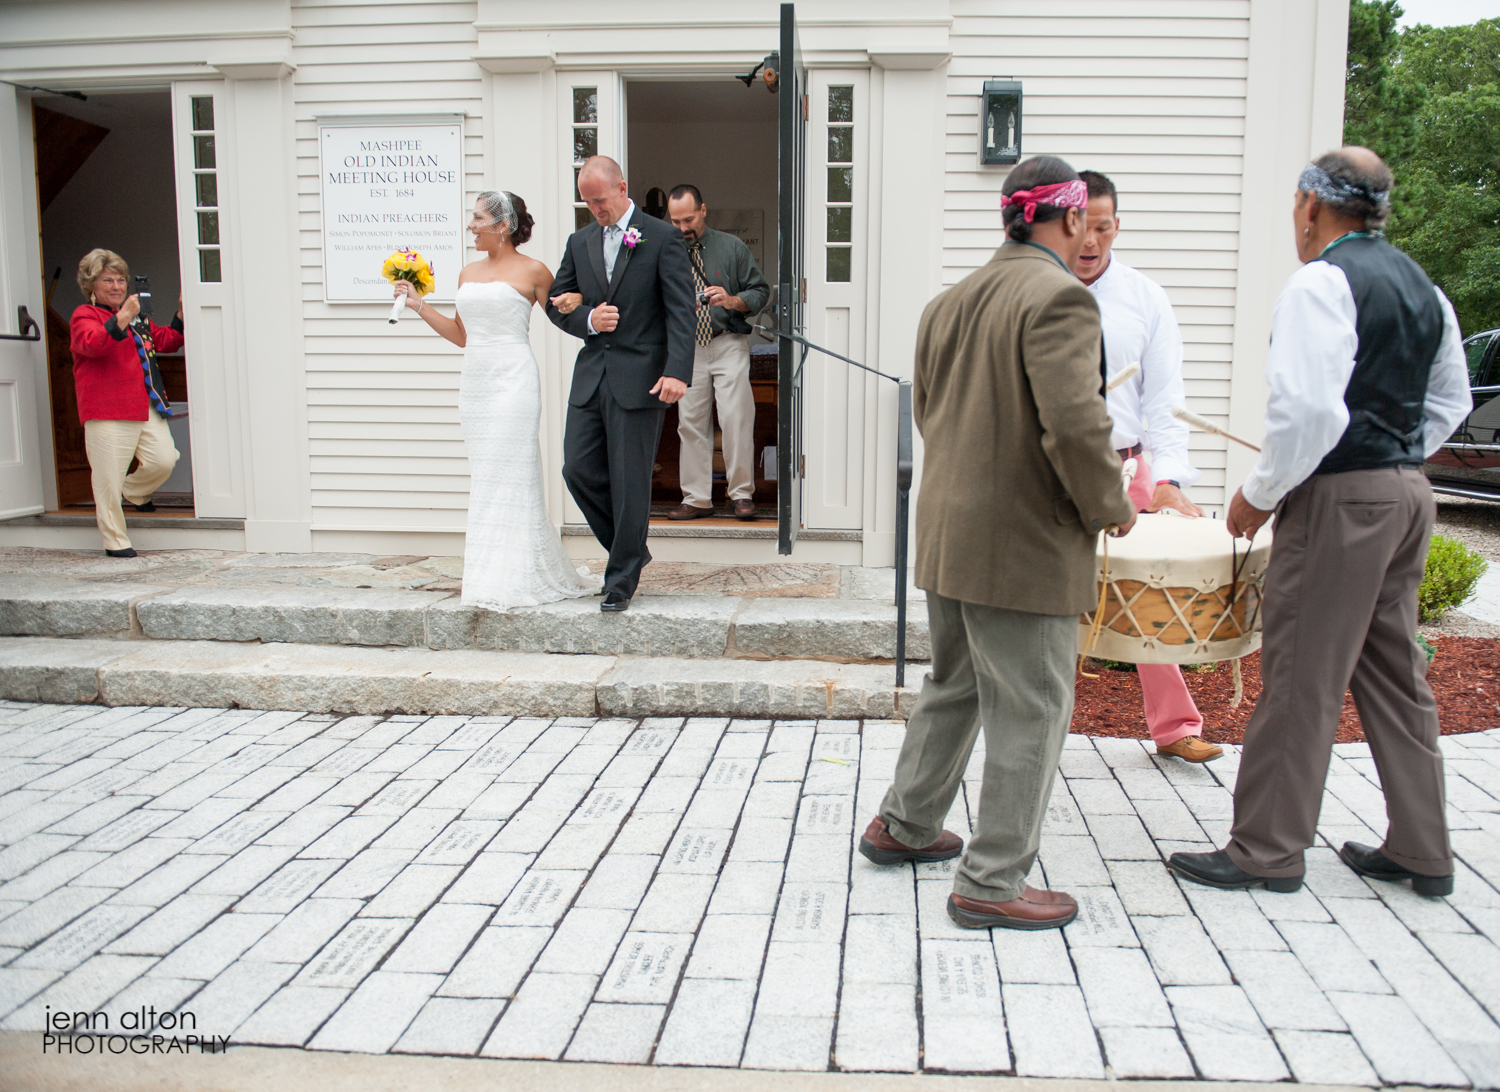 Drum playing during exit procession of Cape Cod Wedding, at Mashpee Old Indian Meeting House